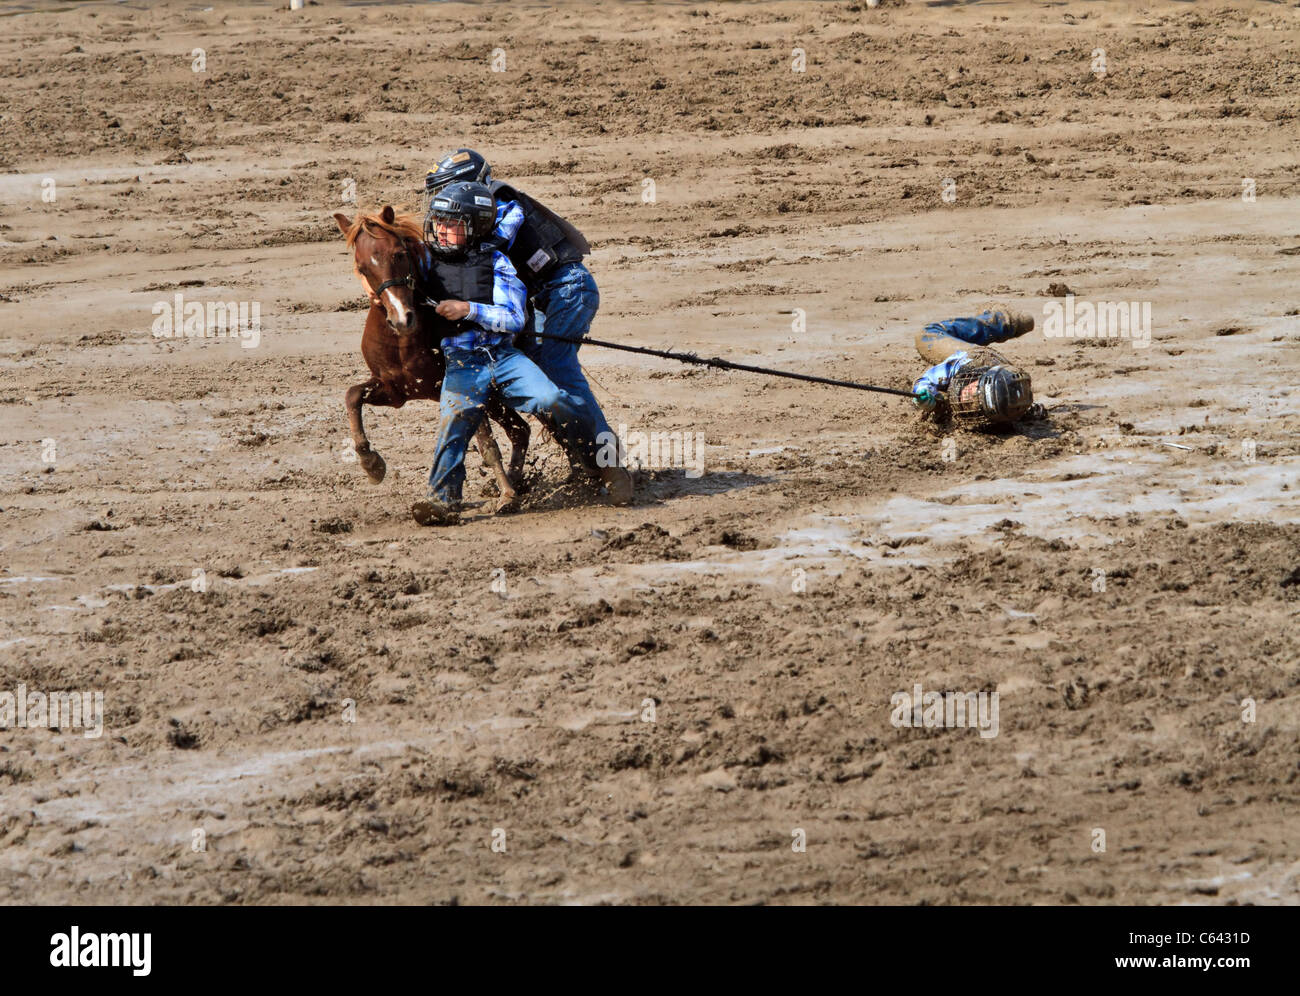 Wild Pony Race Calgary Stampede Alberta Canada This Is